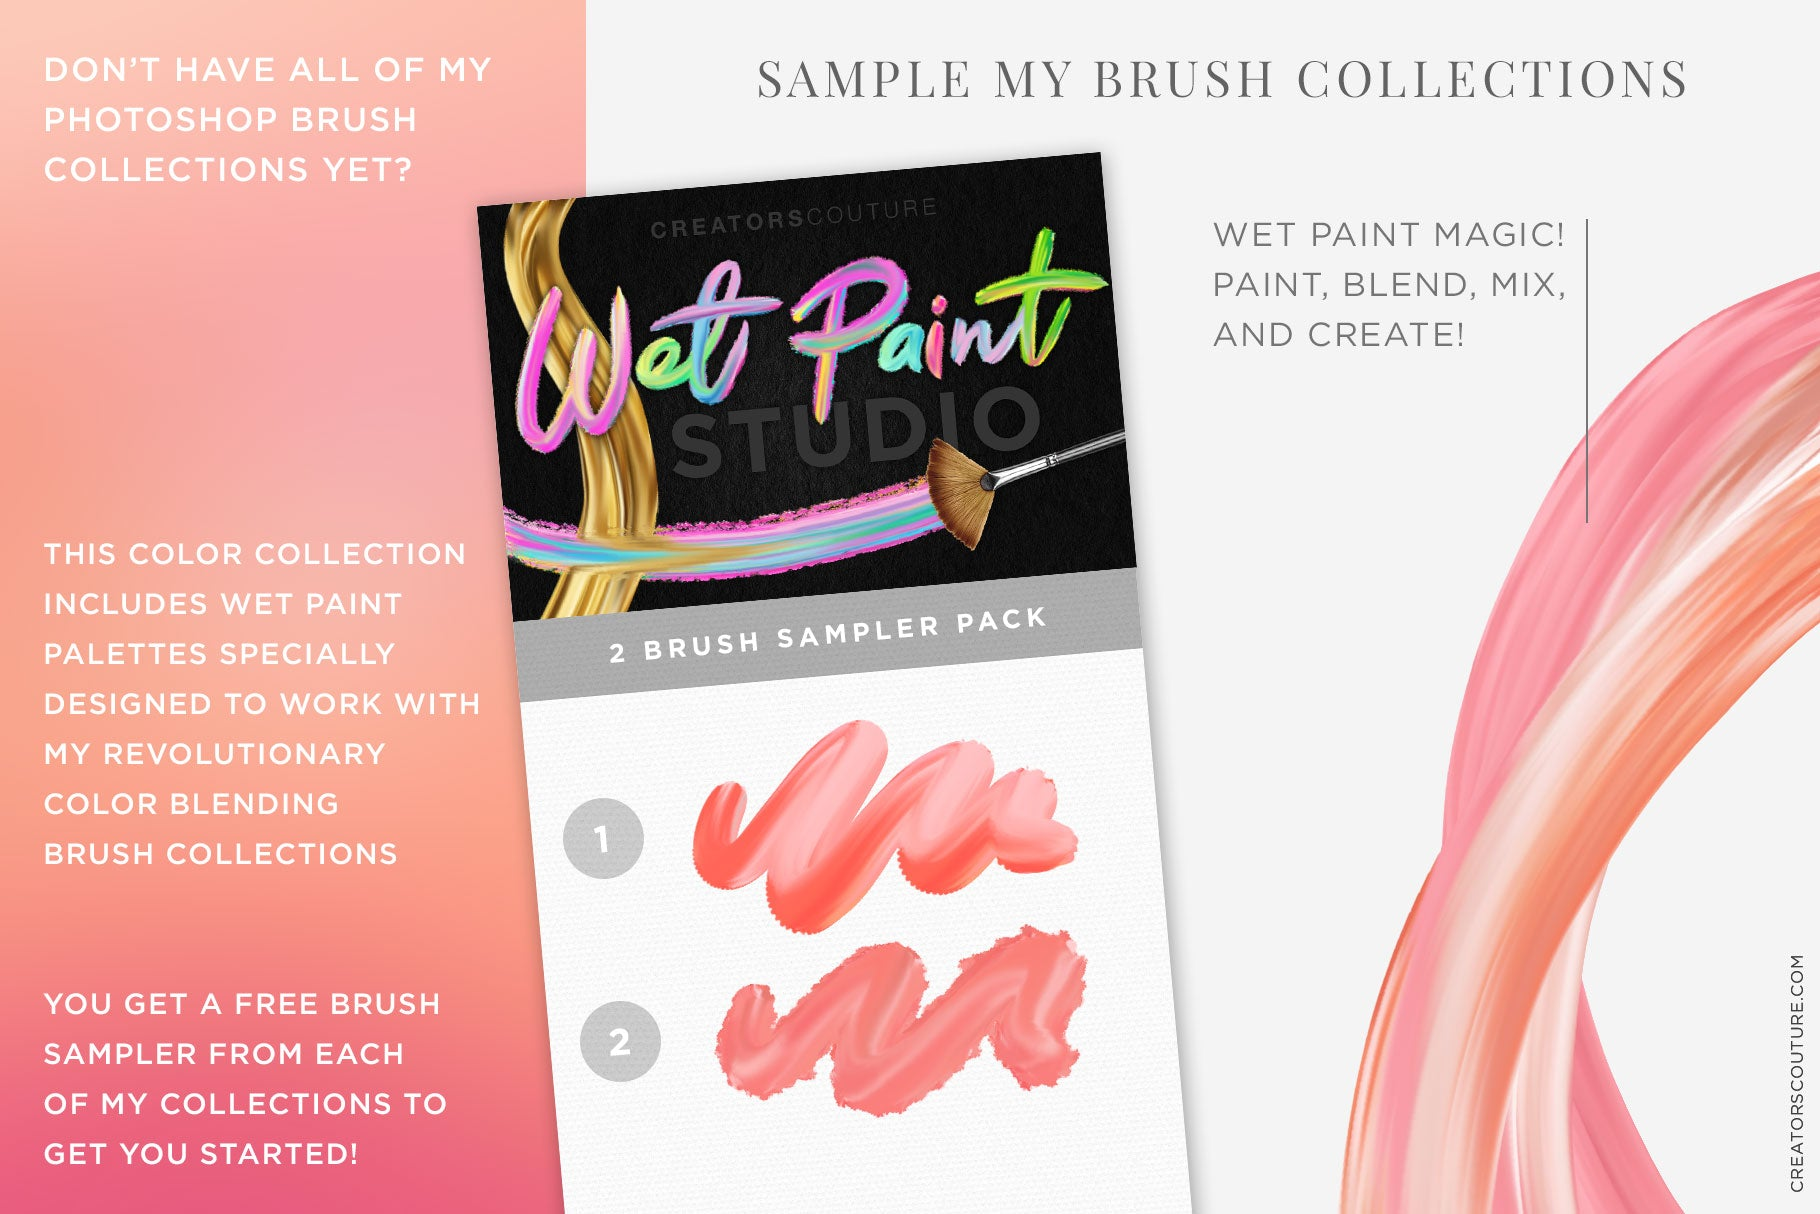 Rosé wine themed Color Palette & Color-Blending Brush Collection, wet brush sampler